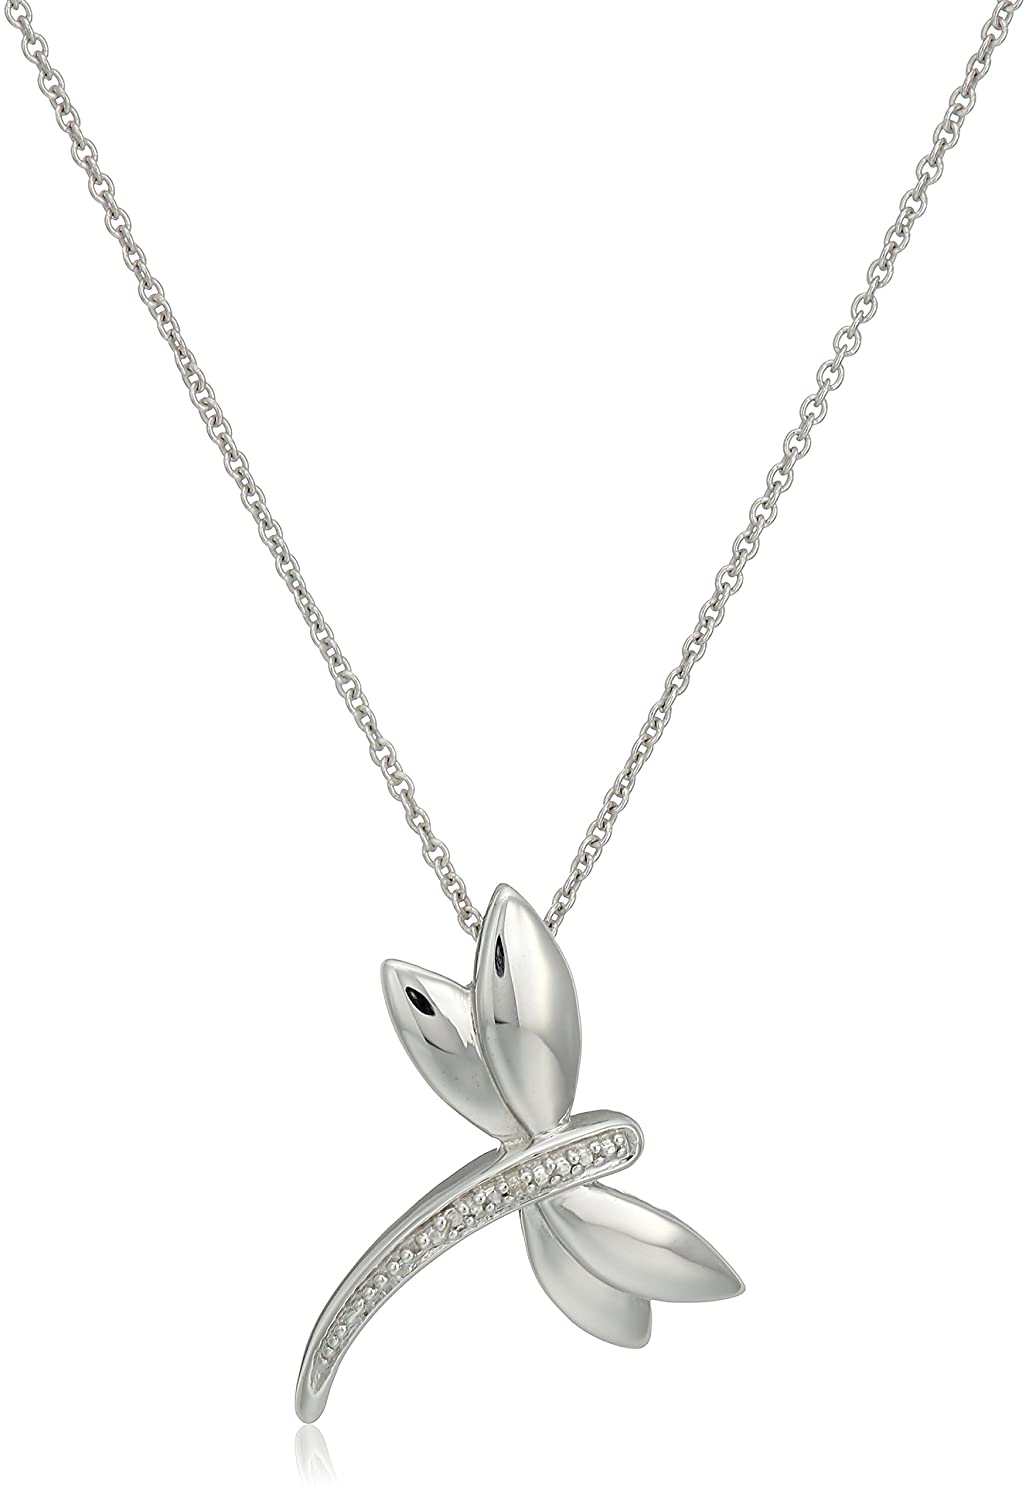 jewellery image from francis gaye dreamy dragonfly necklace pendant pandora